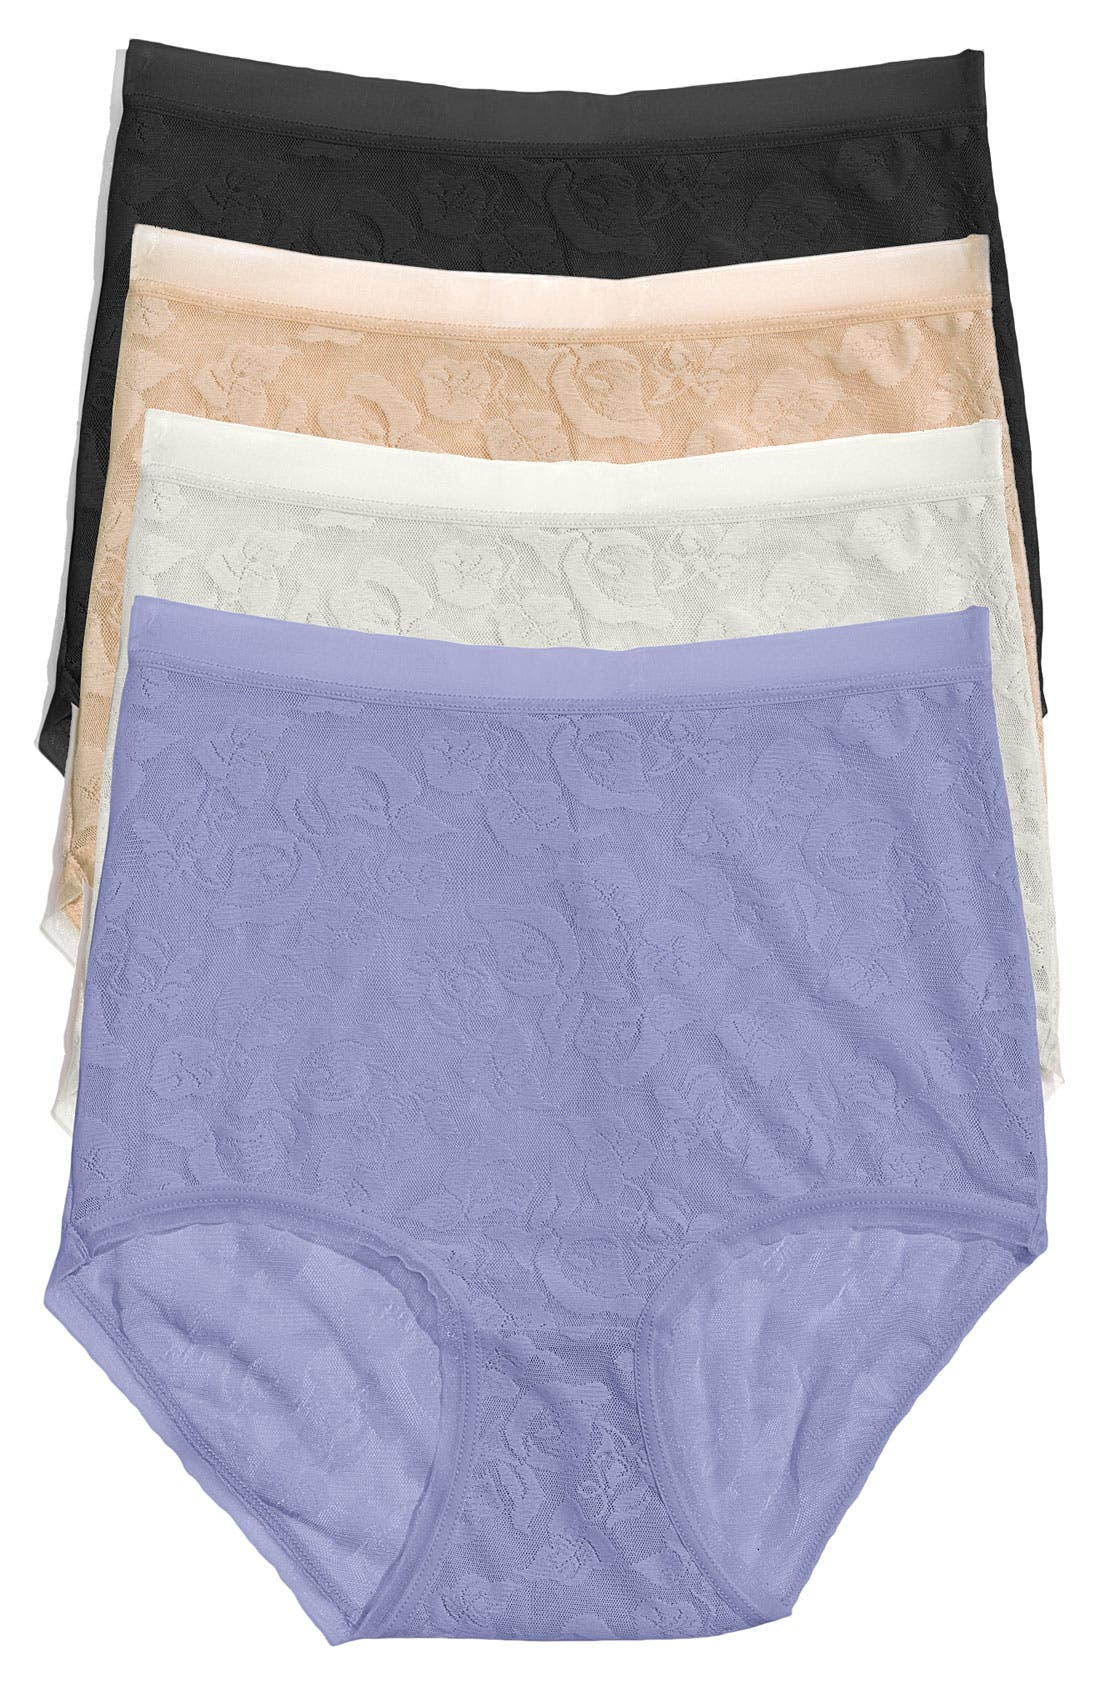 Main Image - Wacoal 'Awareness' High Waist Briefs